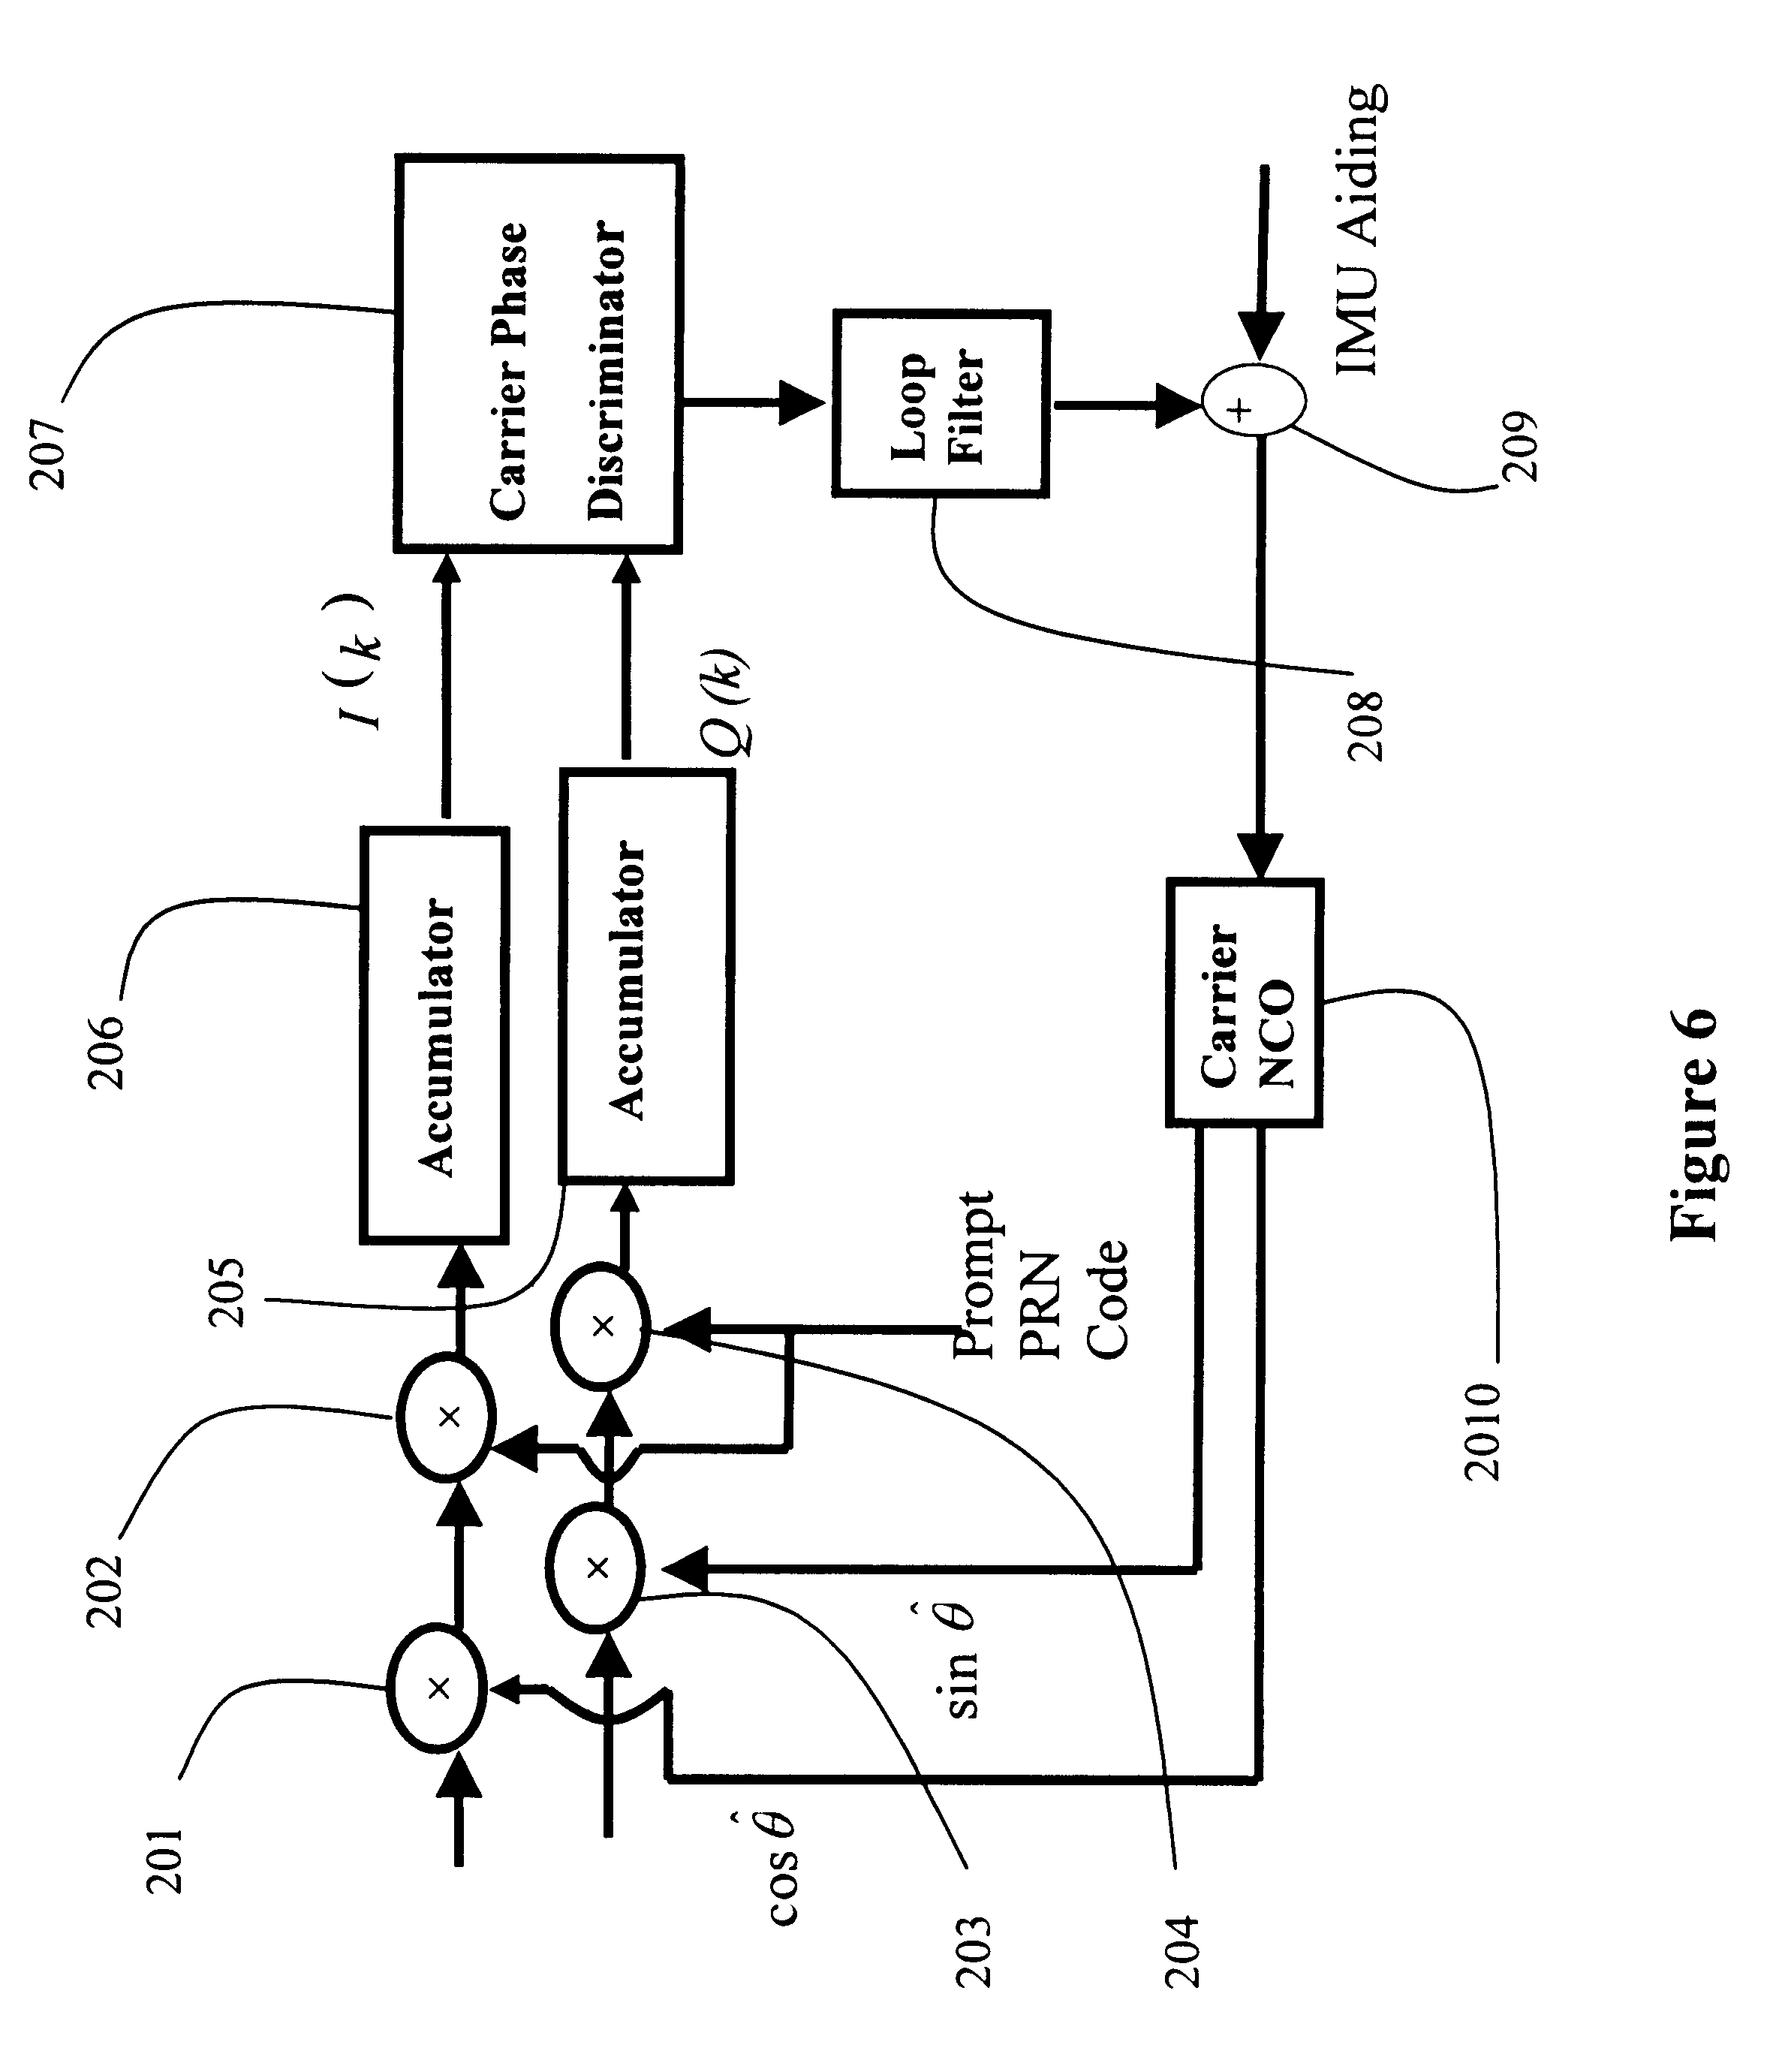 high dynamic carrier tracking using kalman Discriminator in a kalman filtering based frequency lock loop in [15], an fftbased estimator is used to in this paper, a novel high dynamic carrier tracking algorithm based on the gpf is proposed two optimization methods are also proposed to obtain better robustness.